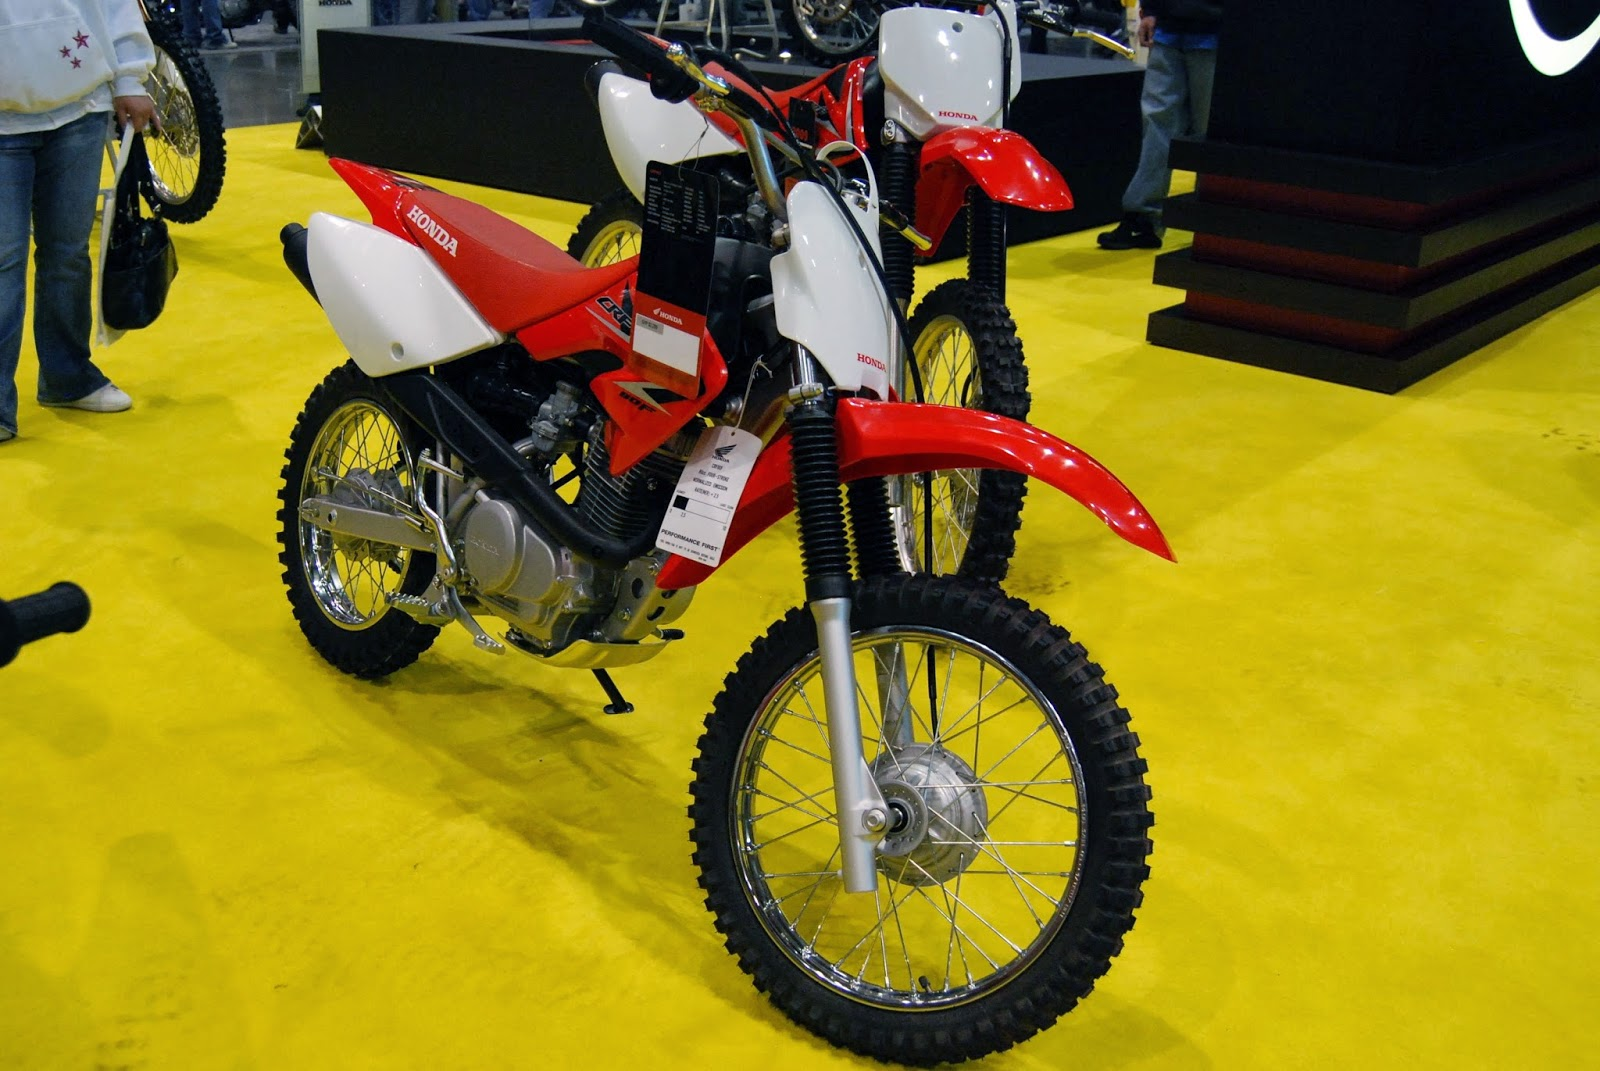 Honda CRF 80F Motorcycle Wallpapers